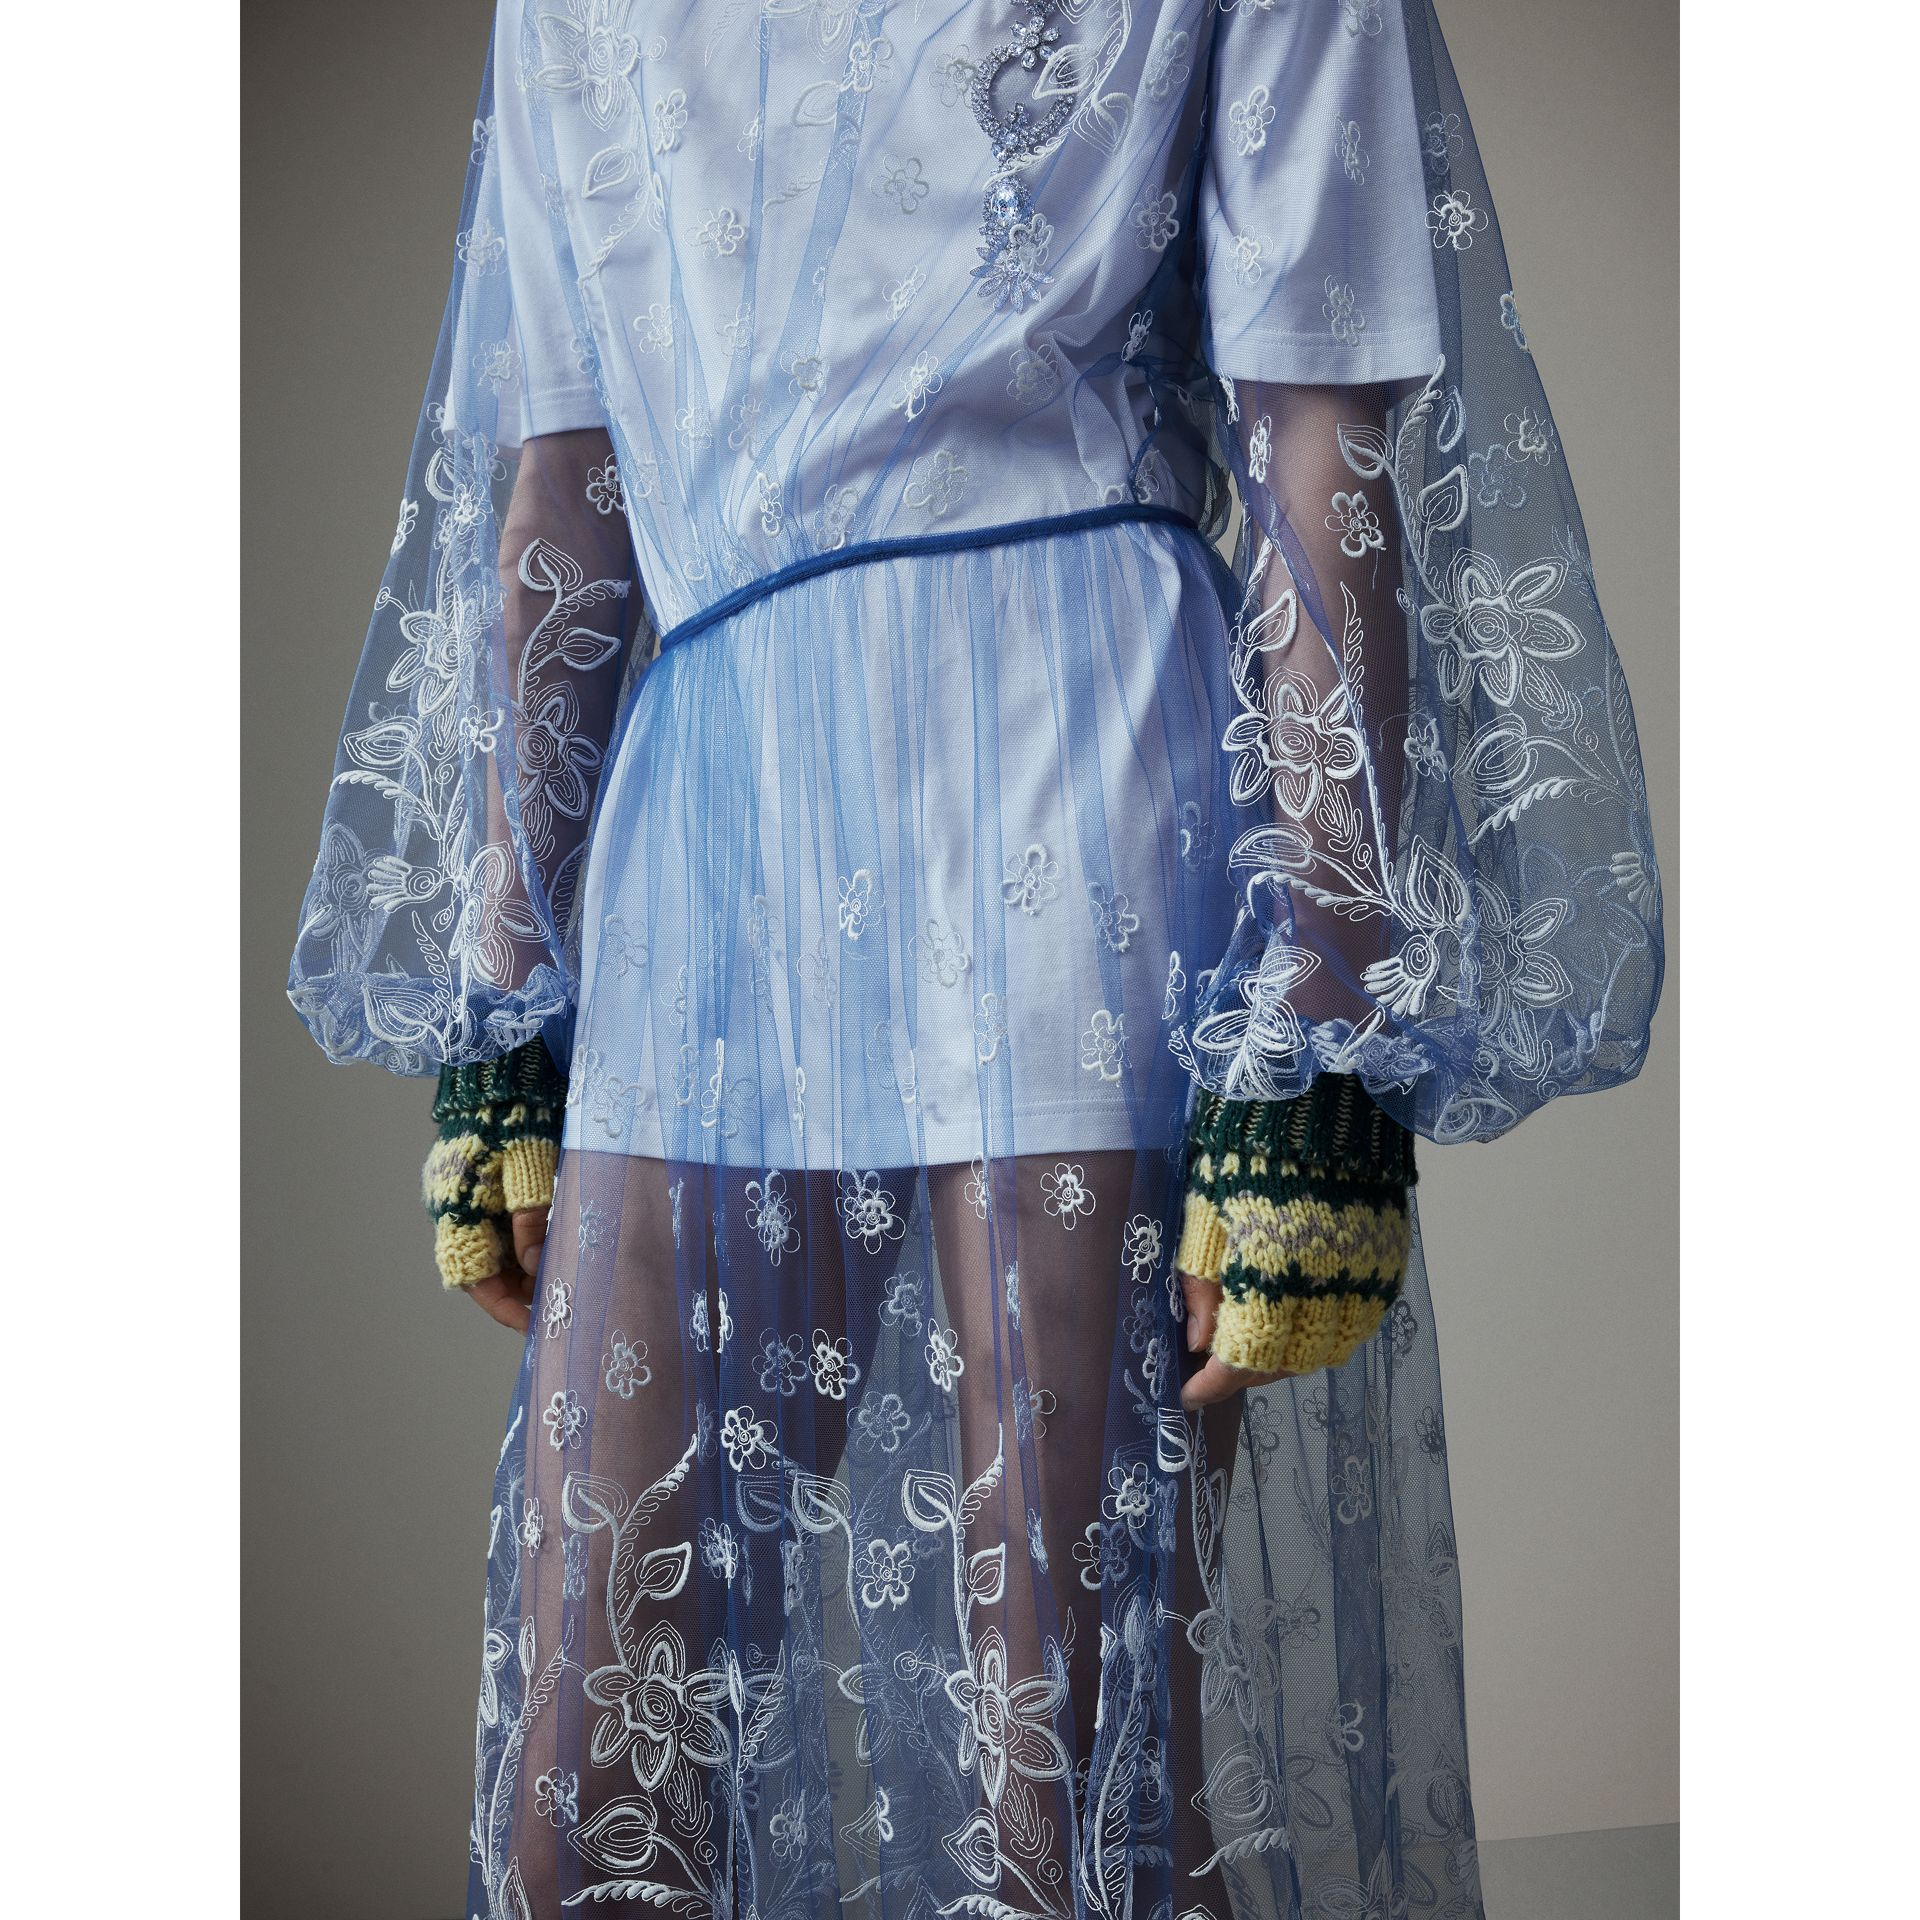 Puff-sleeve Embroidered Tulle Dress in Hydrangea Blue/white - Women | Burberry Canada - gallery image 1